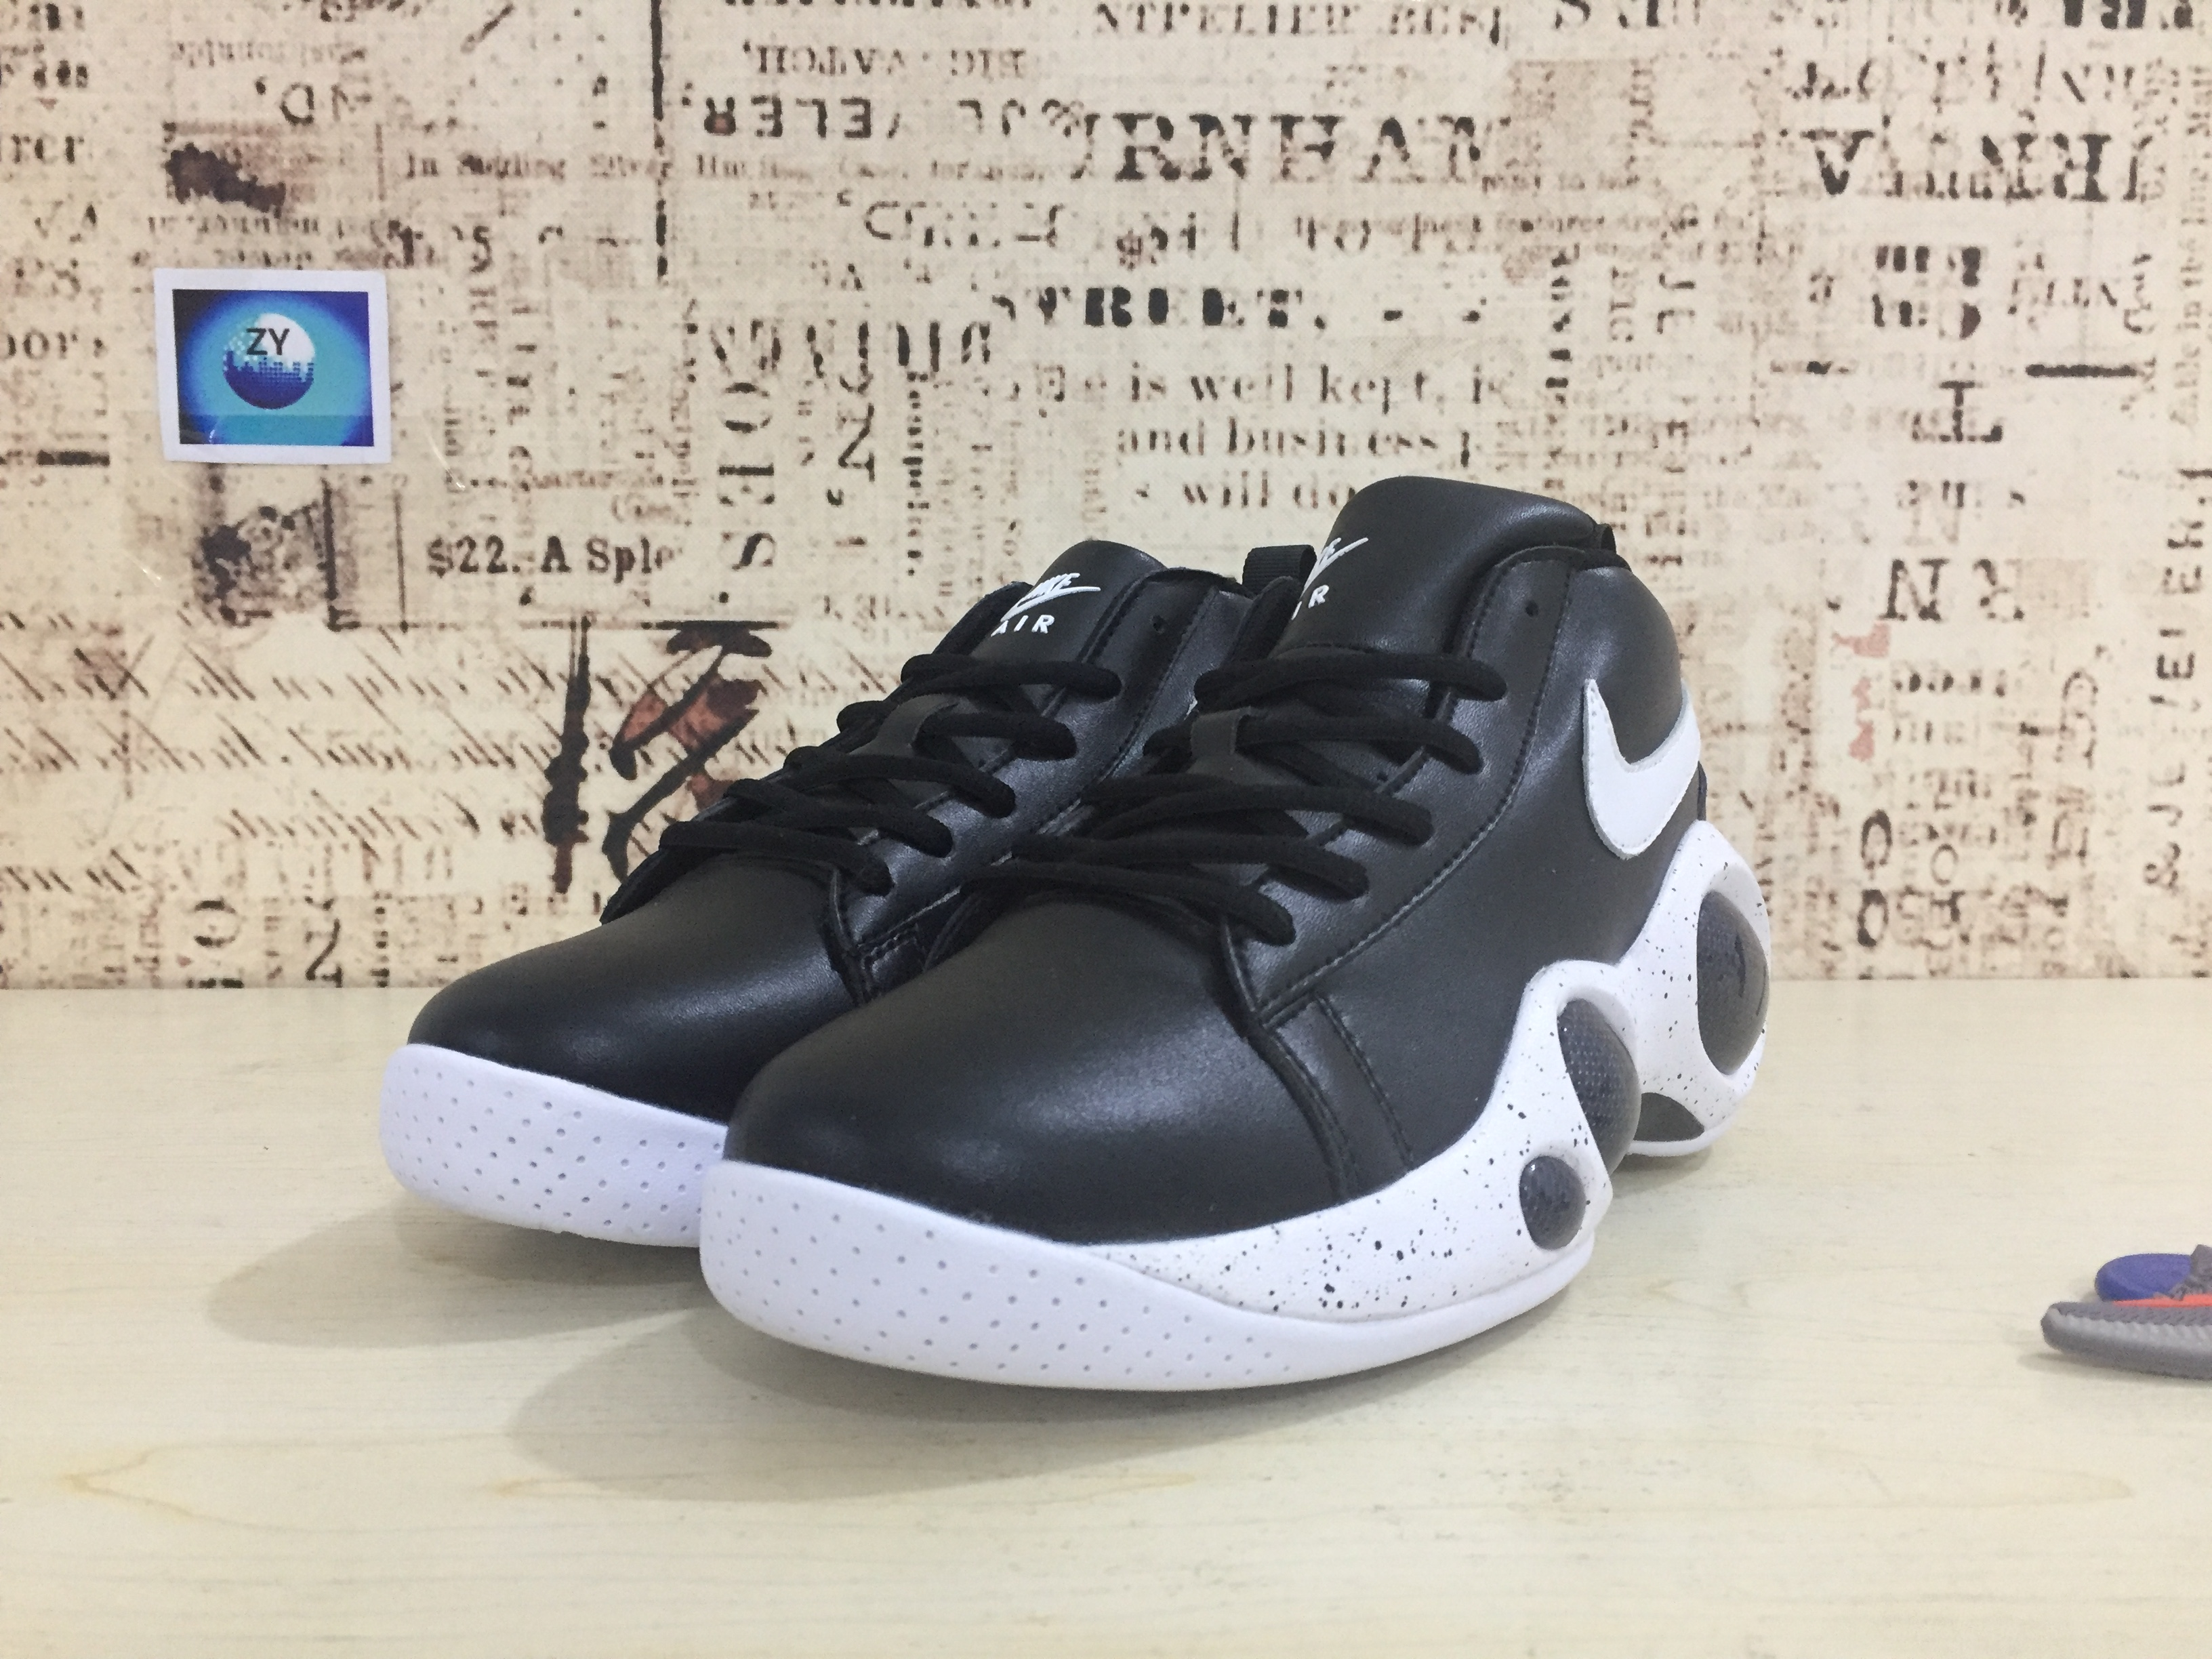 Nike Zoom Bonafide Black White Shoes